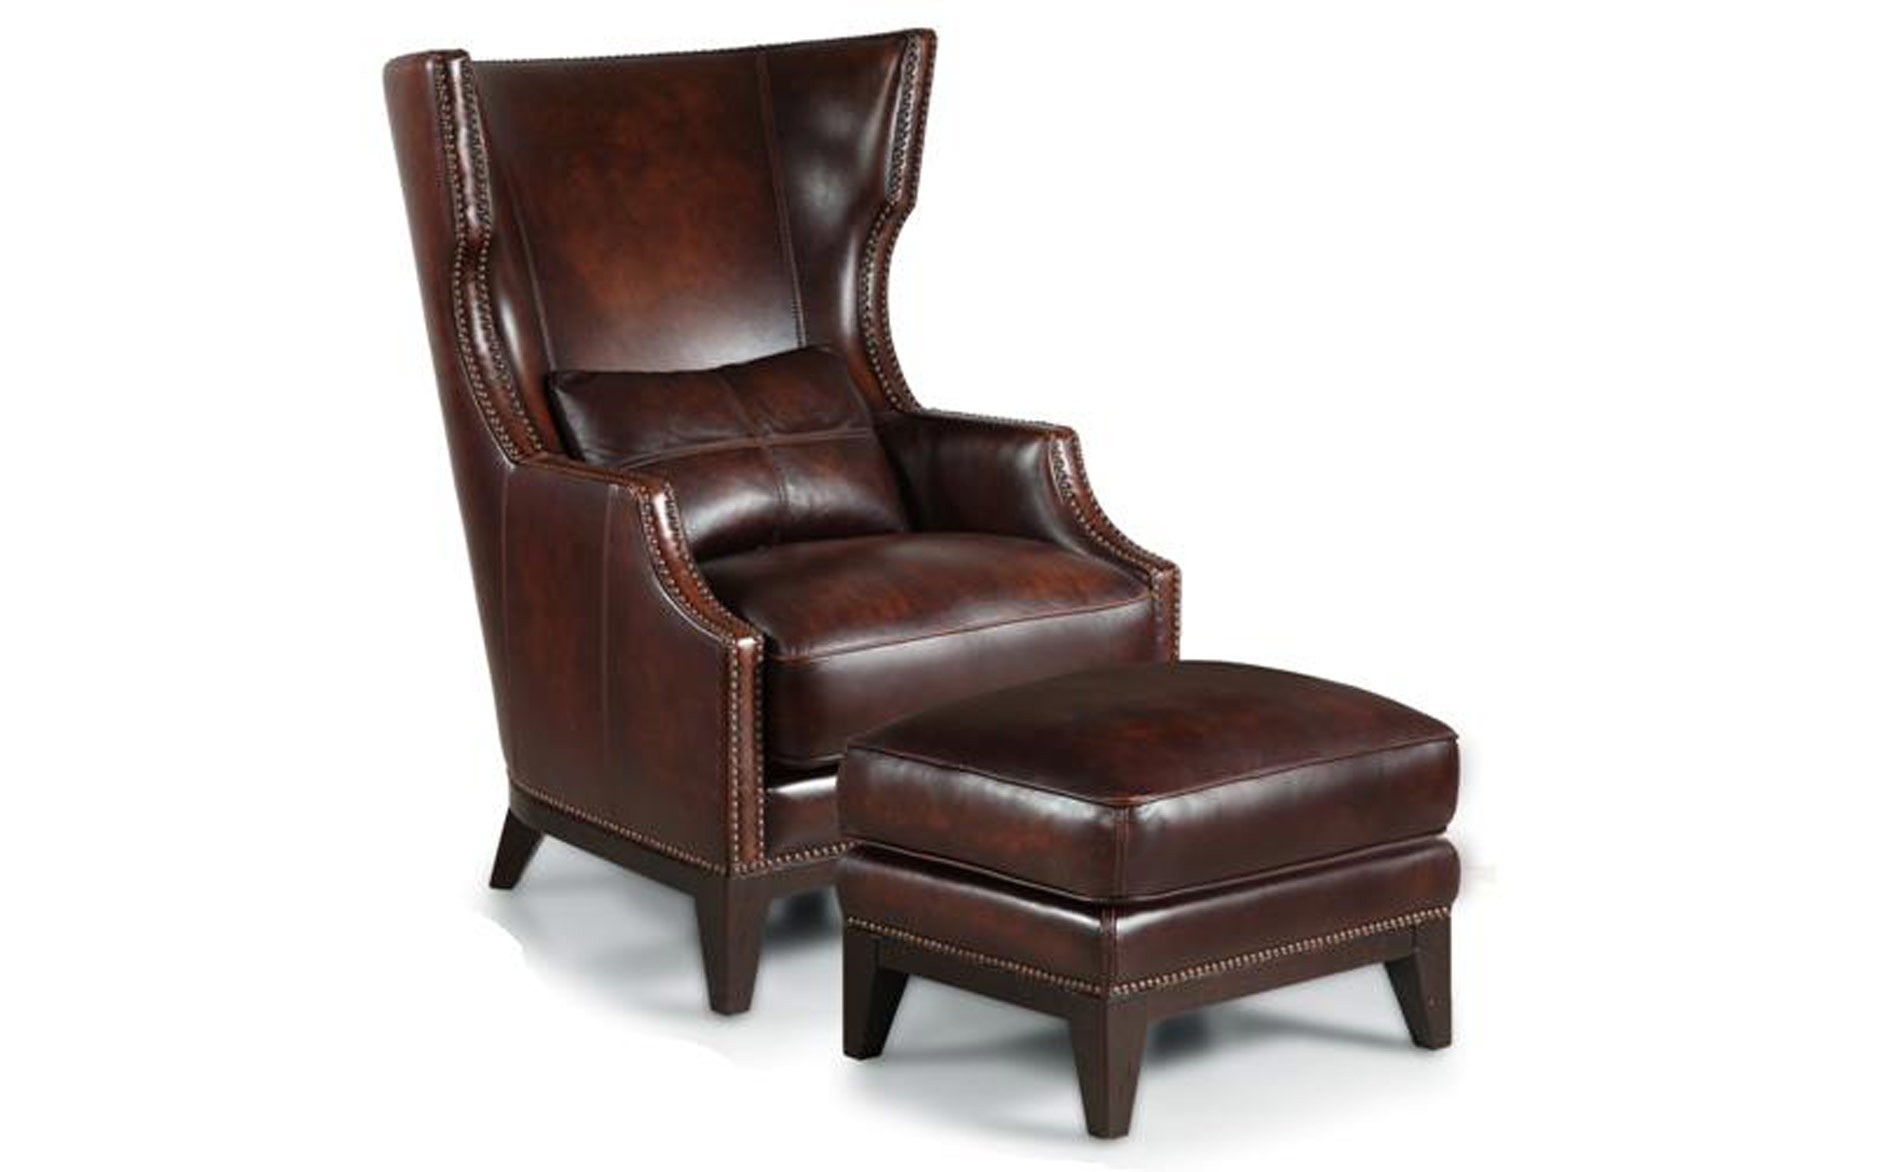 Leather Chair and Ottoman | Leather Reclining Chair and Ottoman | Club Chair with Ottoman